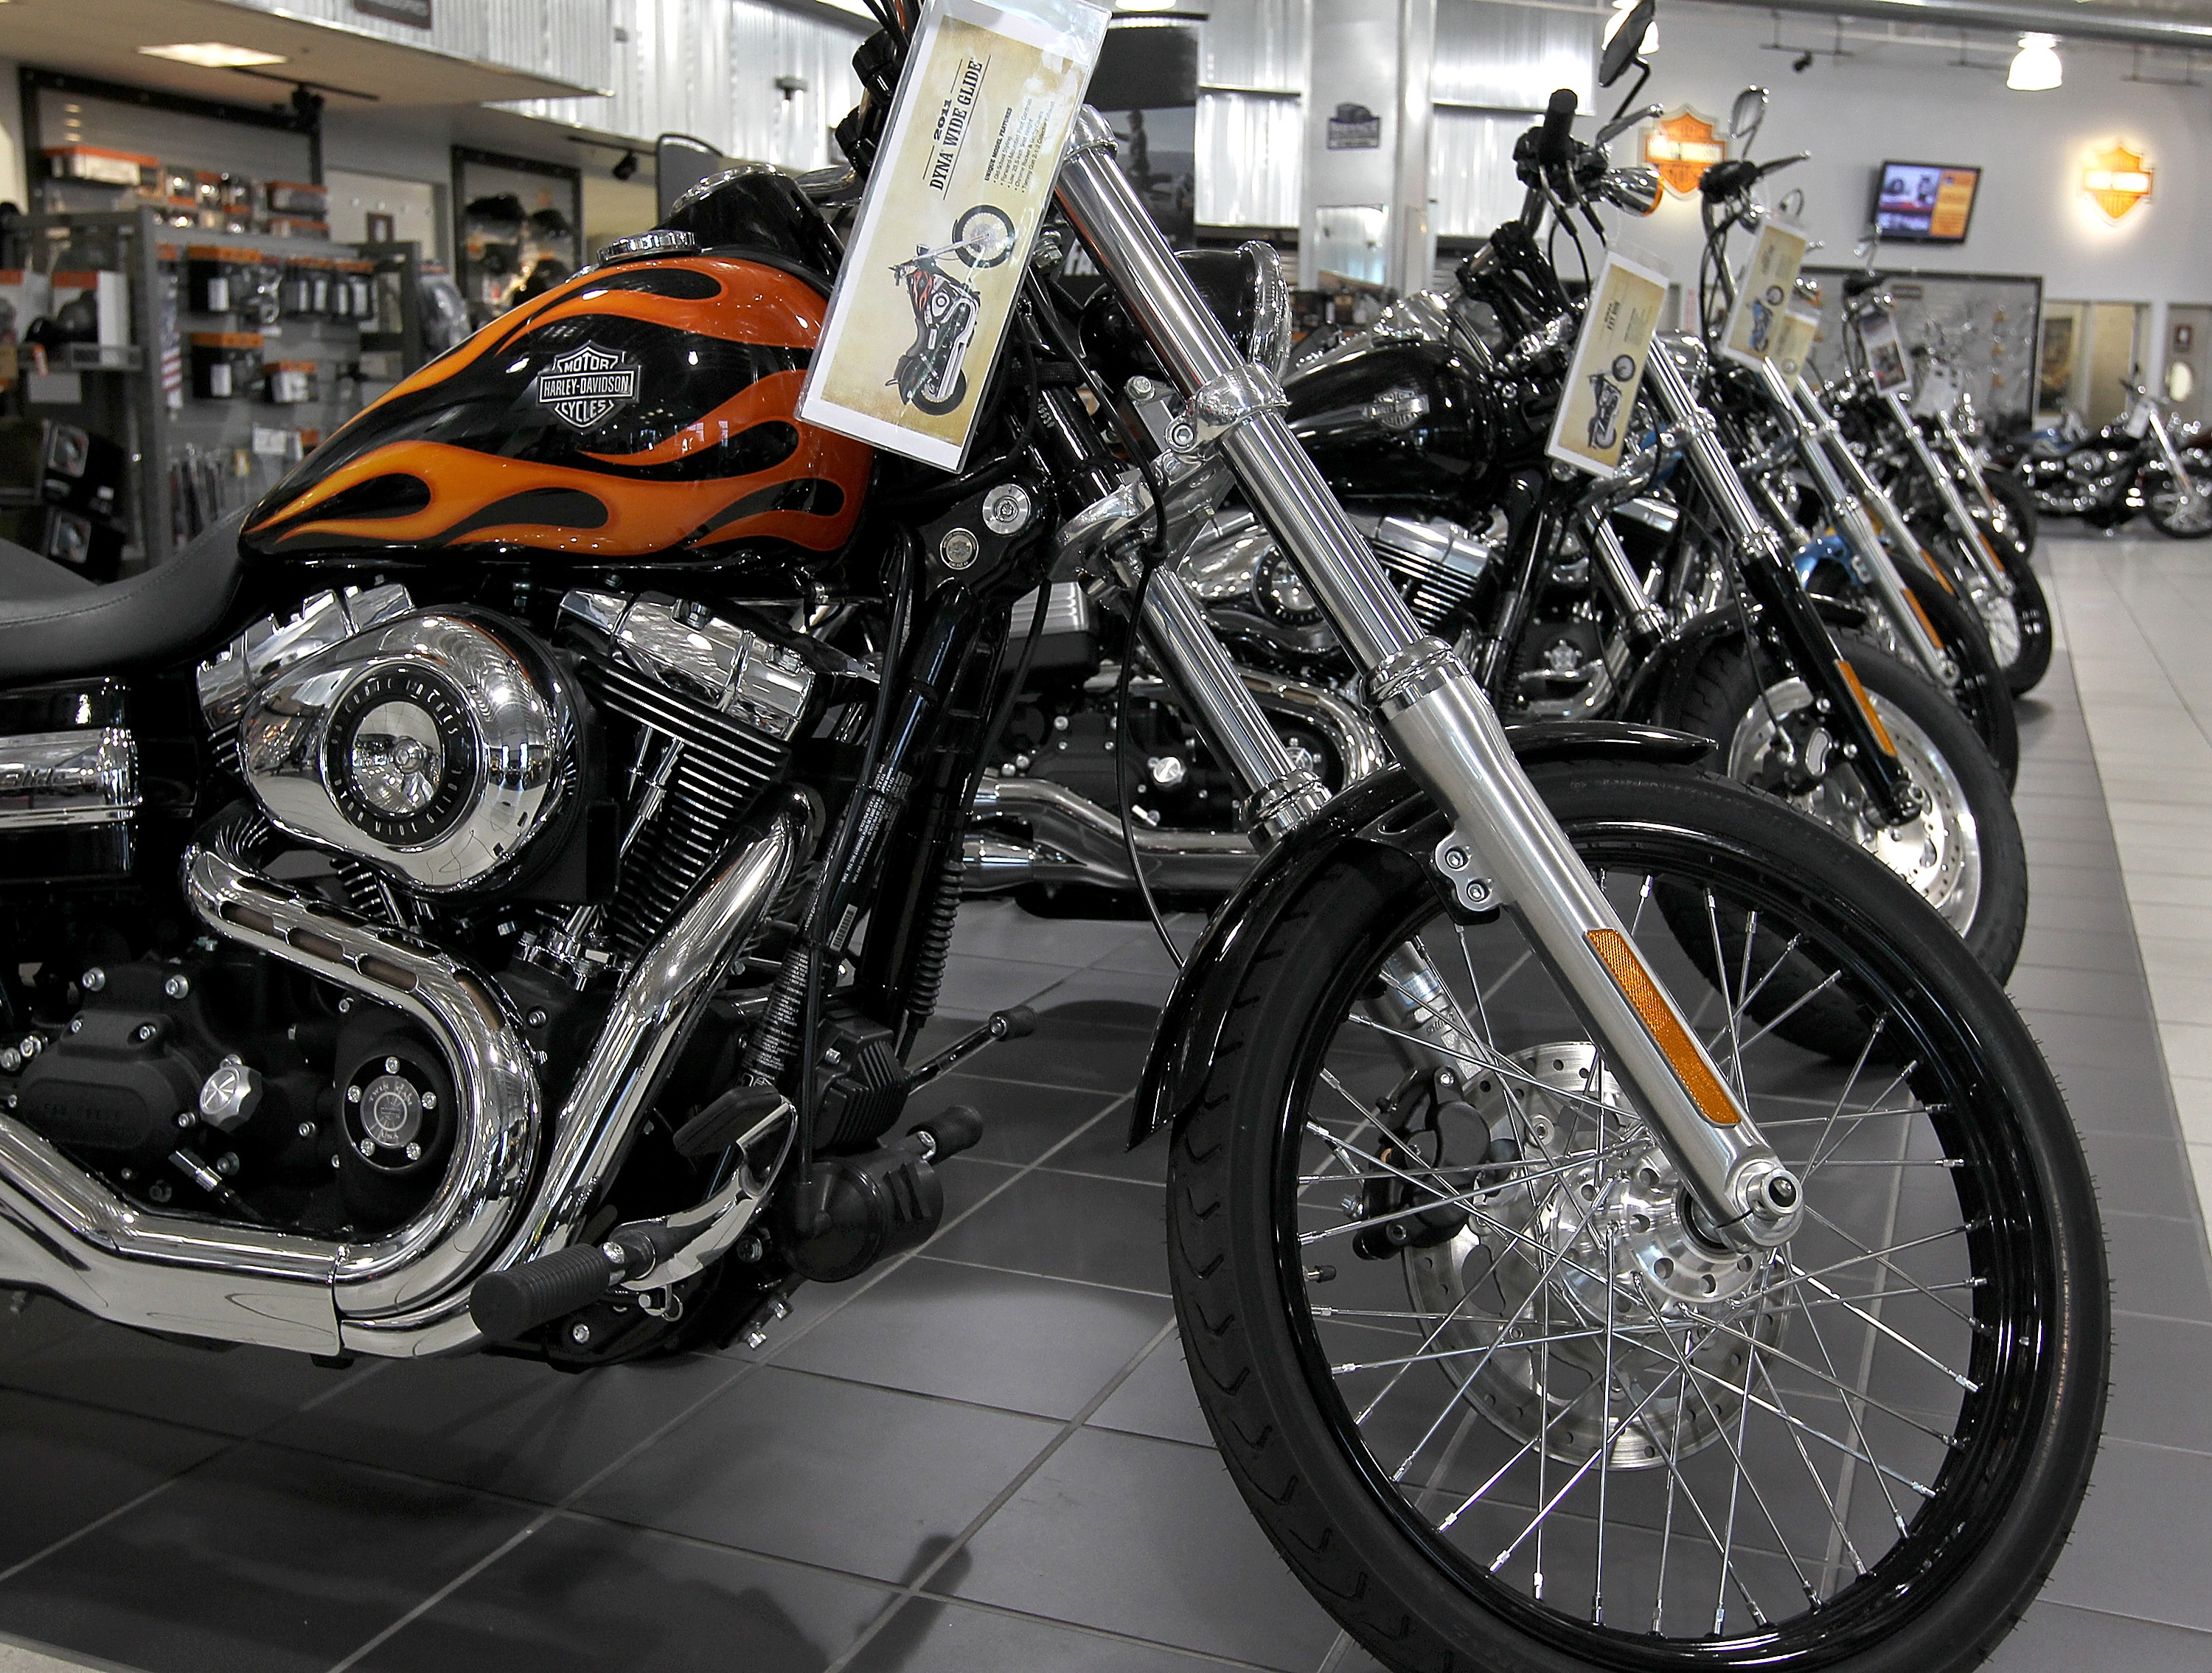 Motorcycle_VIN_Check harley davidson motorcycles for sale